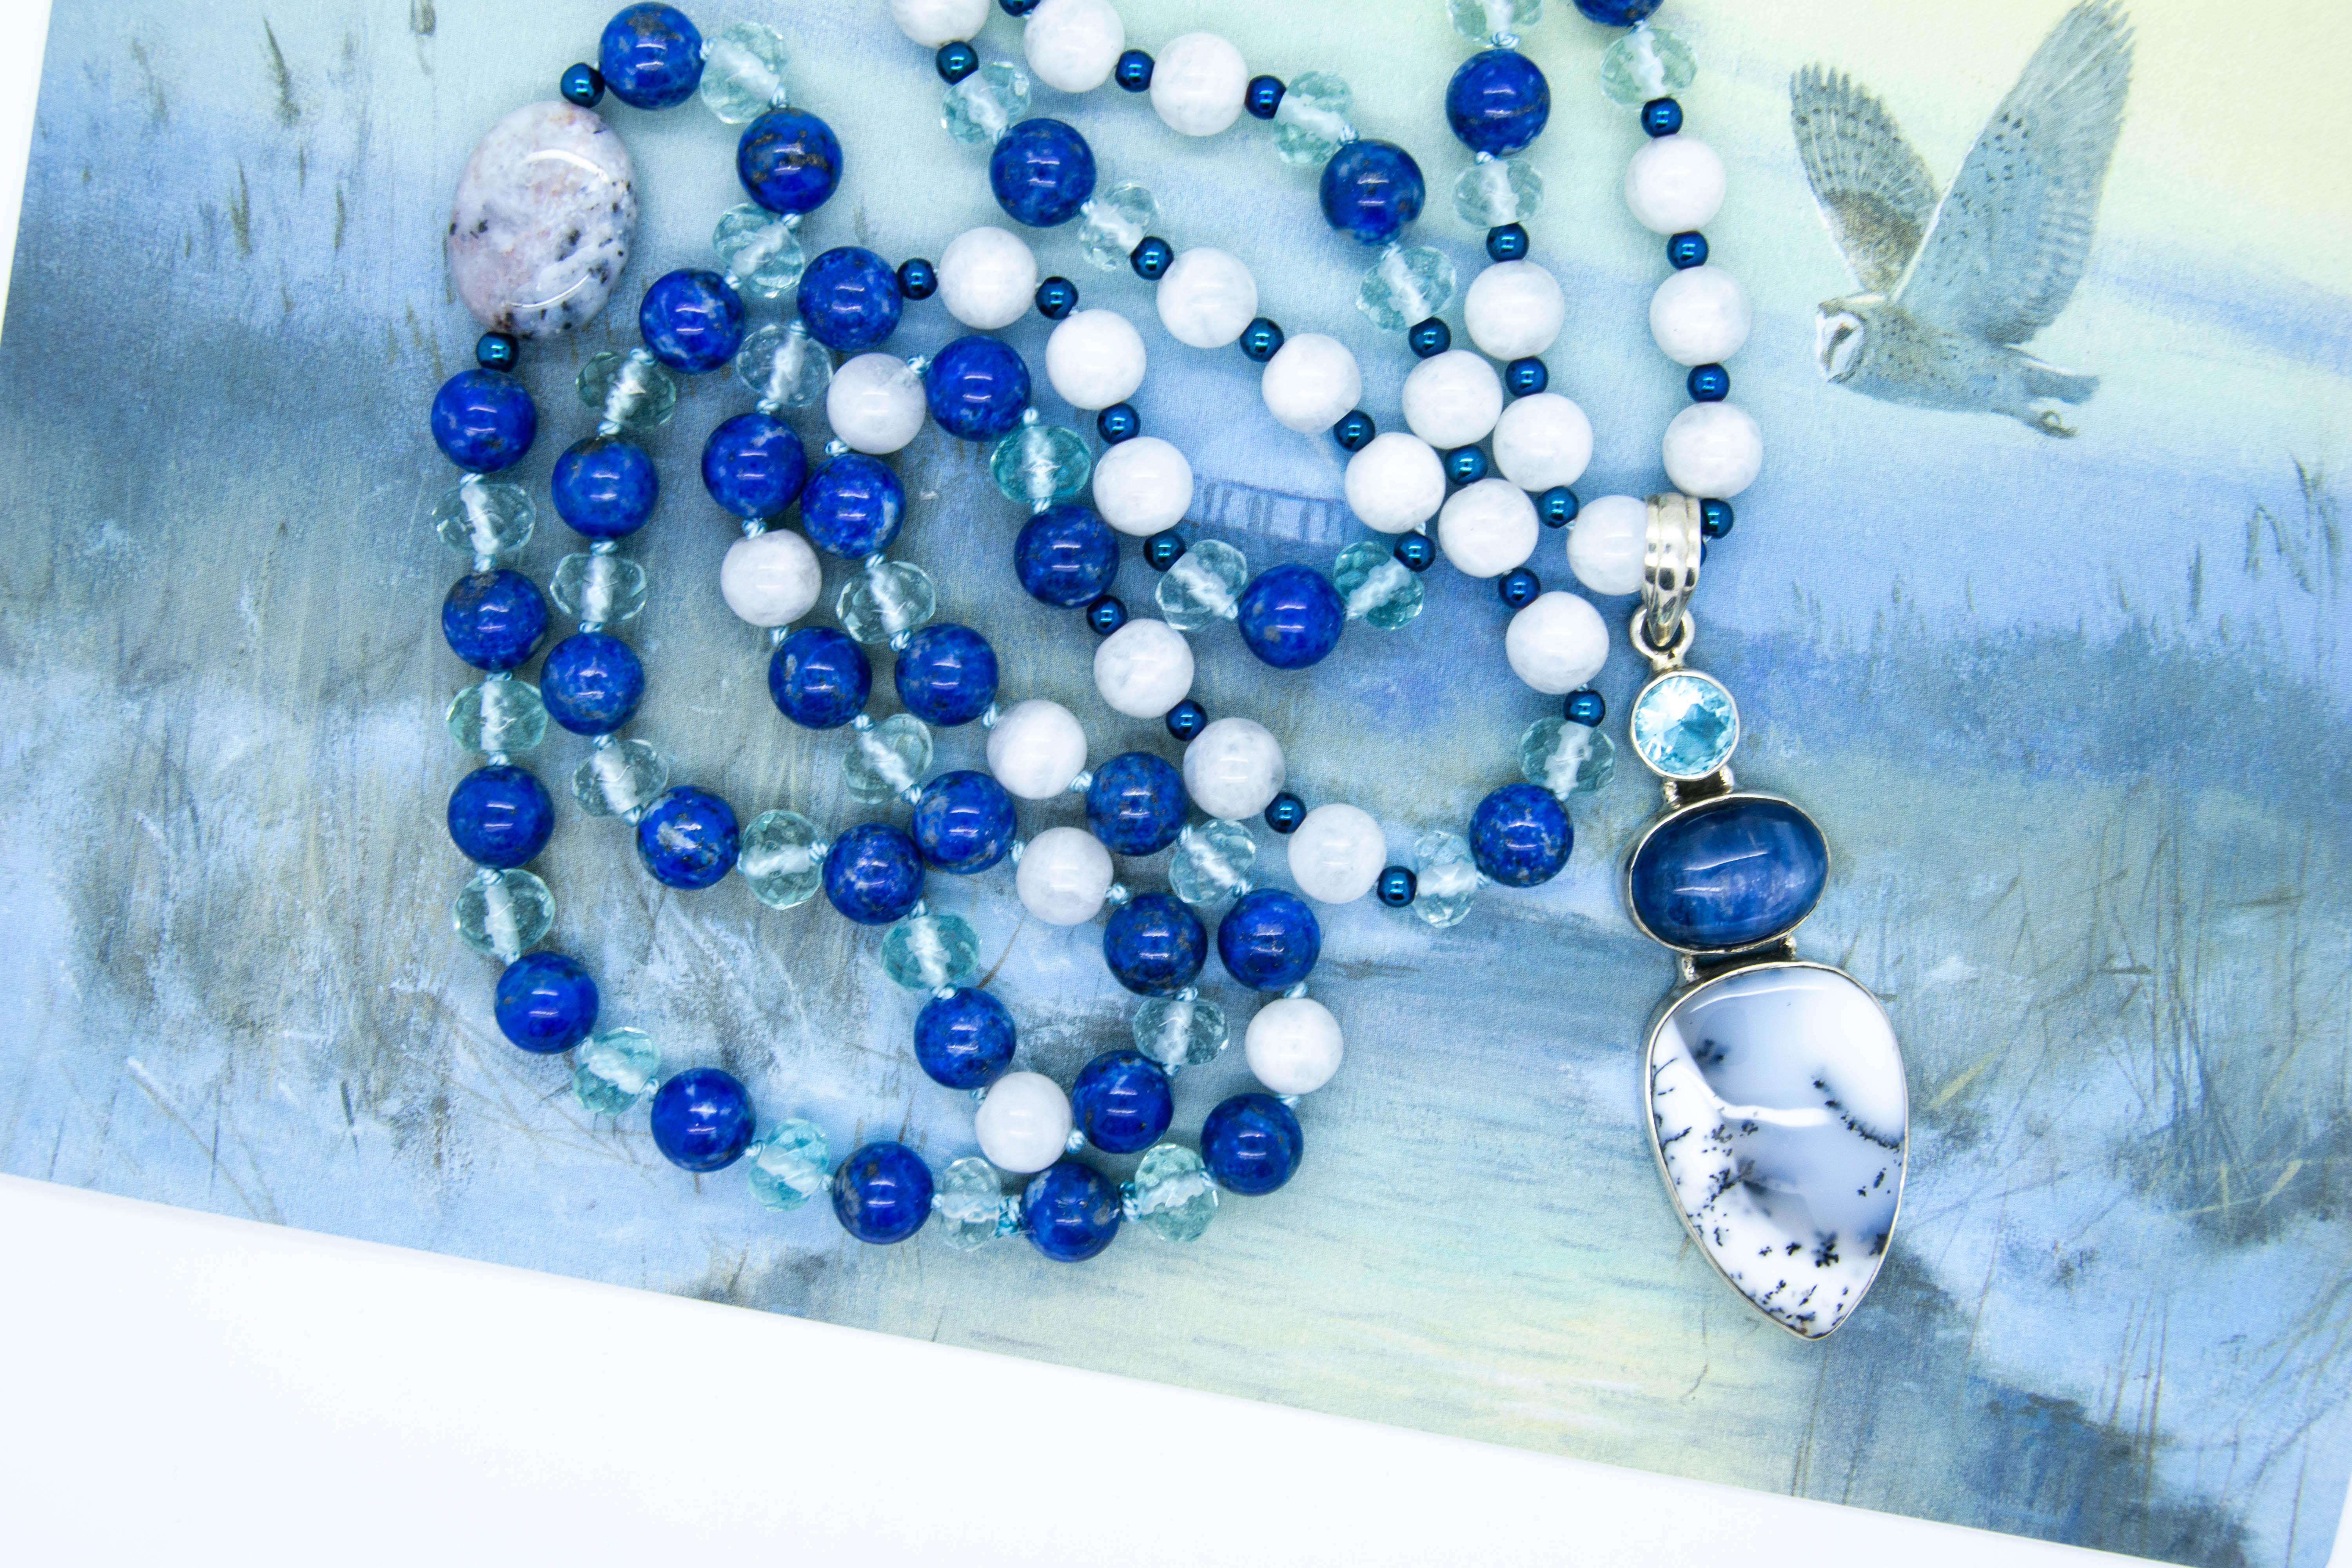 Merlinite Mala With Topaz, Kyanite, Lapis Lazuli, Moonstone, Agate & Seaglass